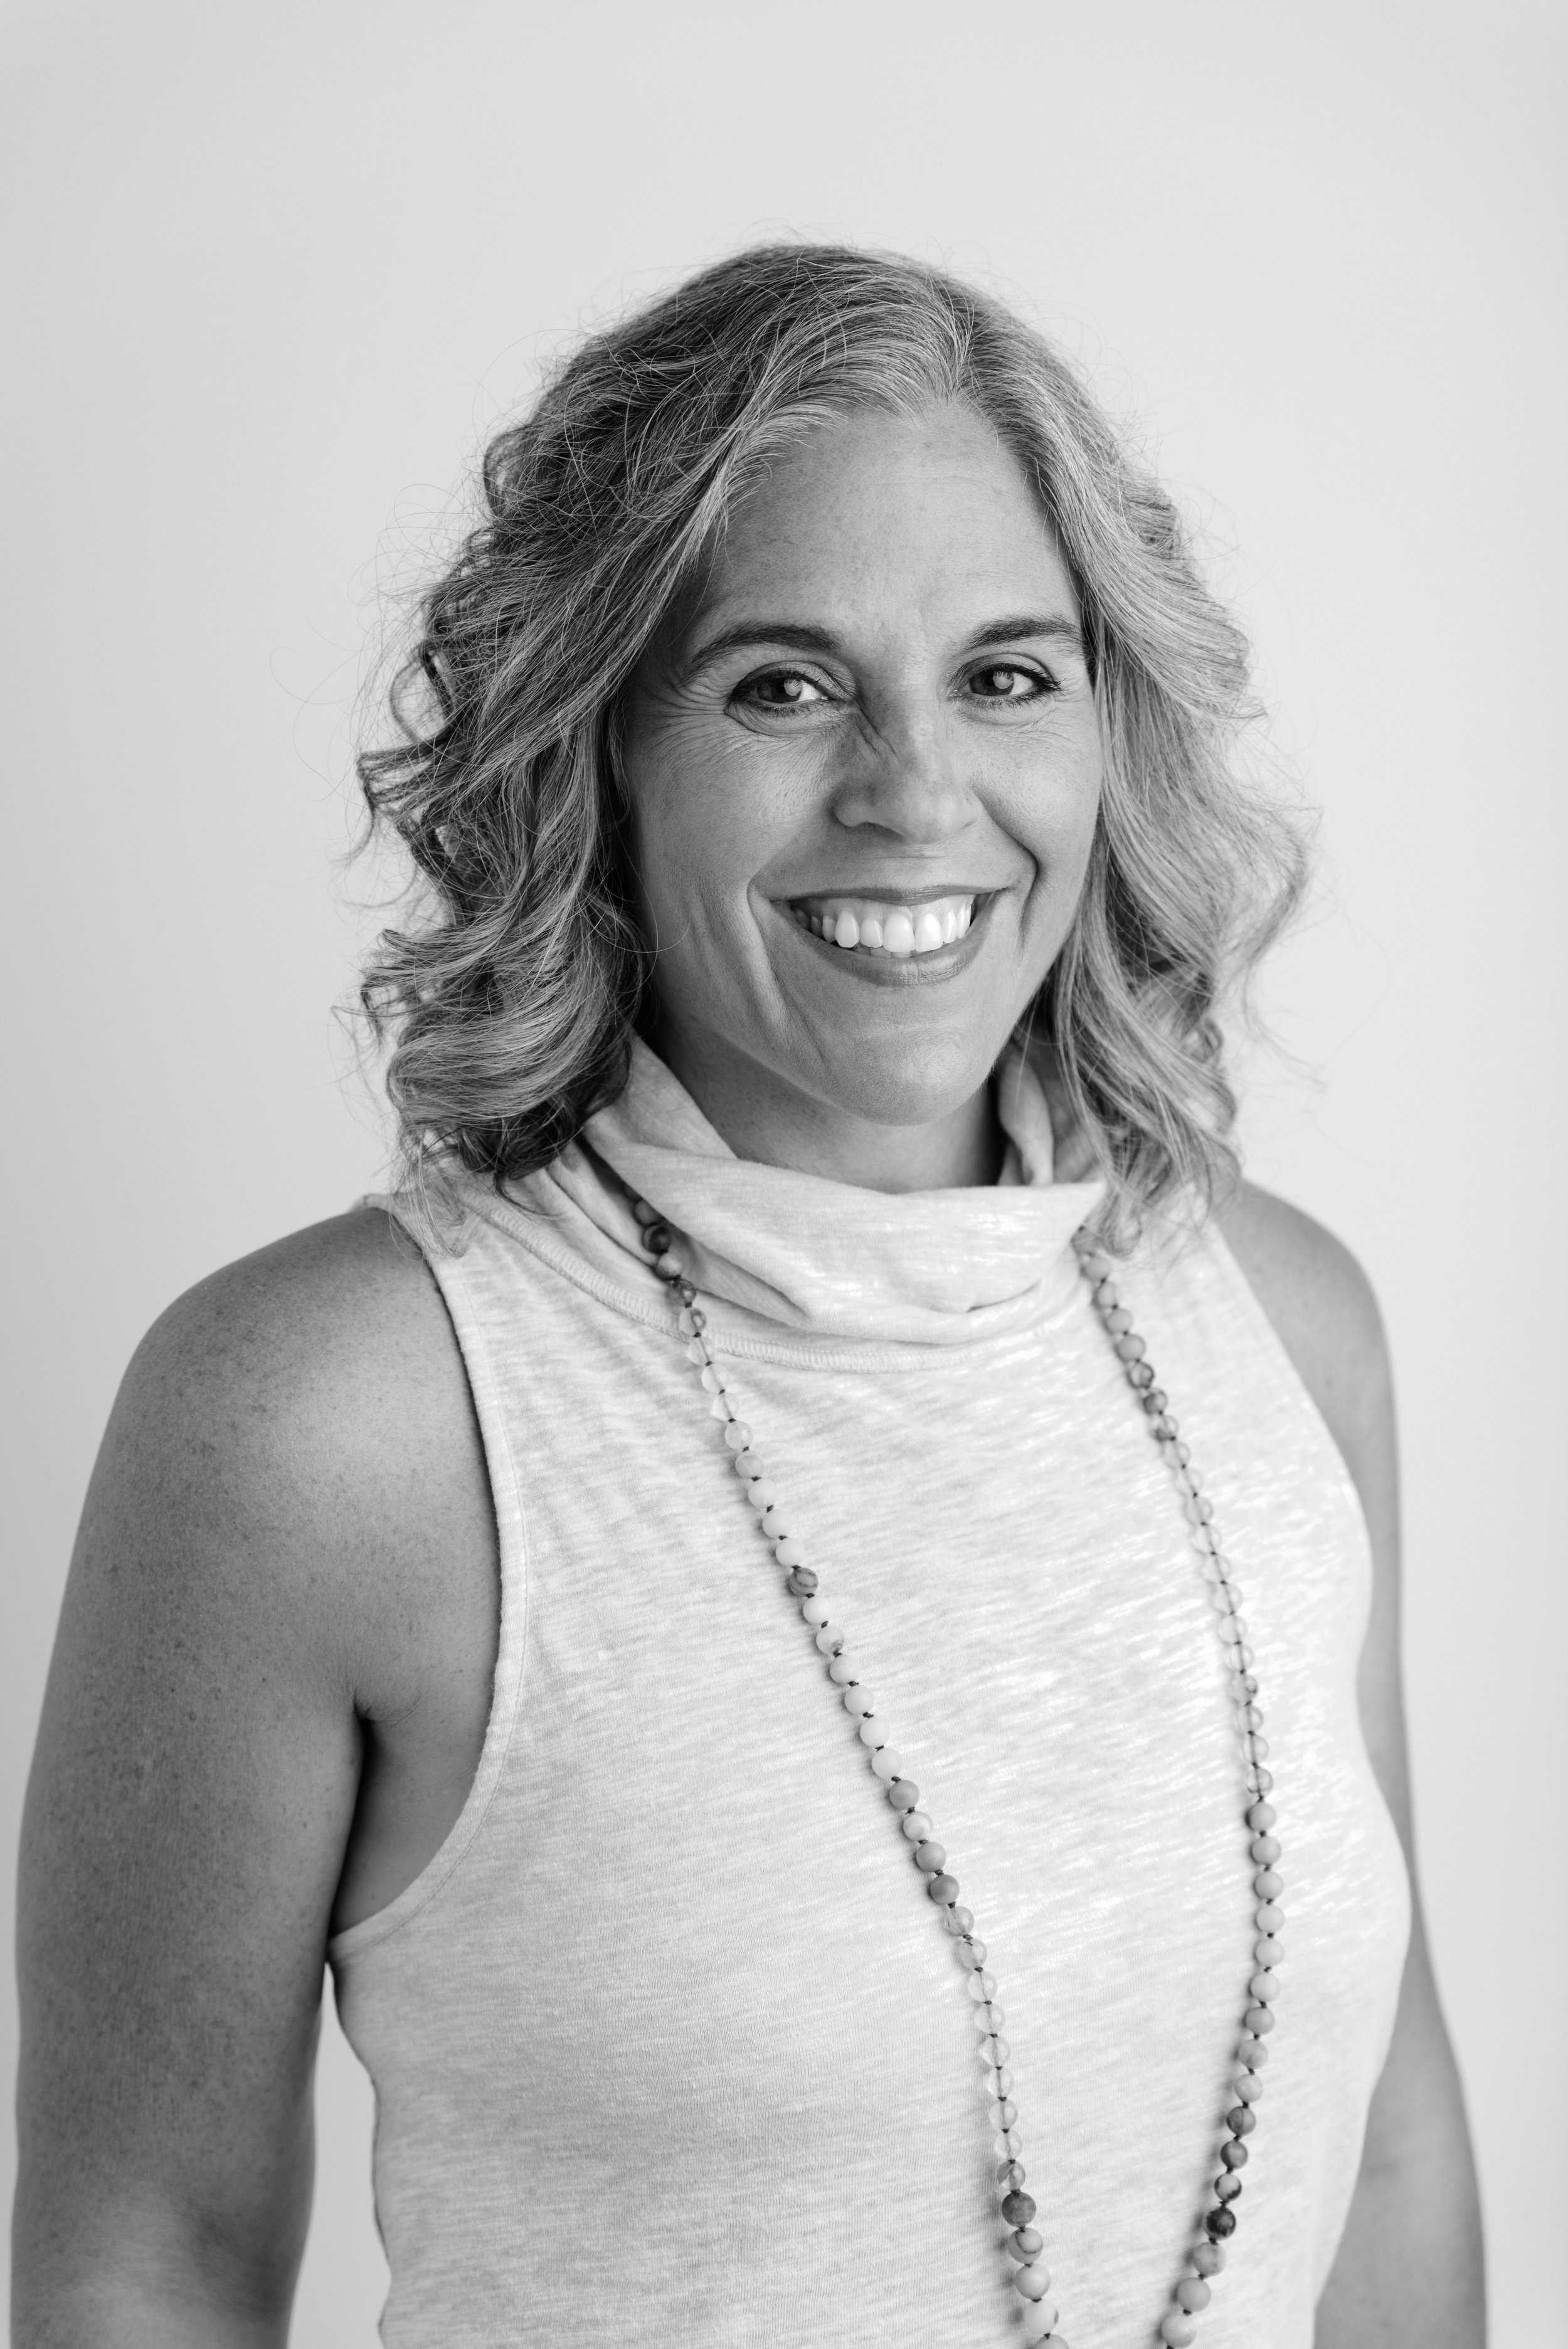 Stacy Dockins - 500ERYT / Co-Founder of Yoga Project Studios